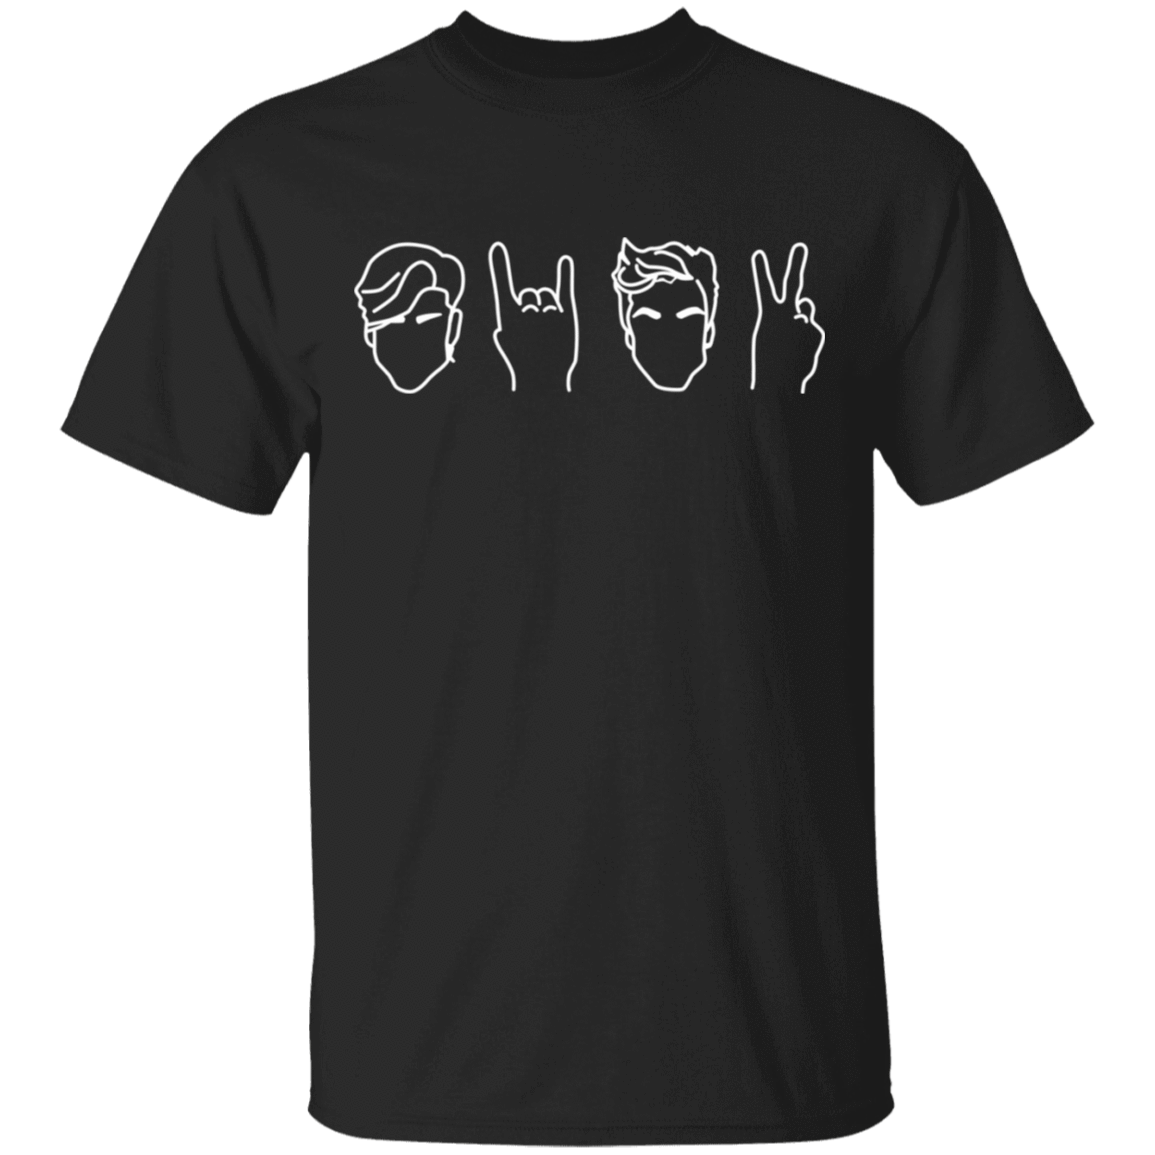 Dolan Twins T-Shirts, Hoodies 22-113-80183033-252 - Tee Ript